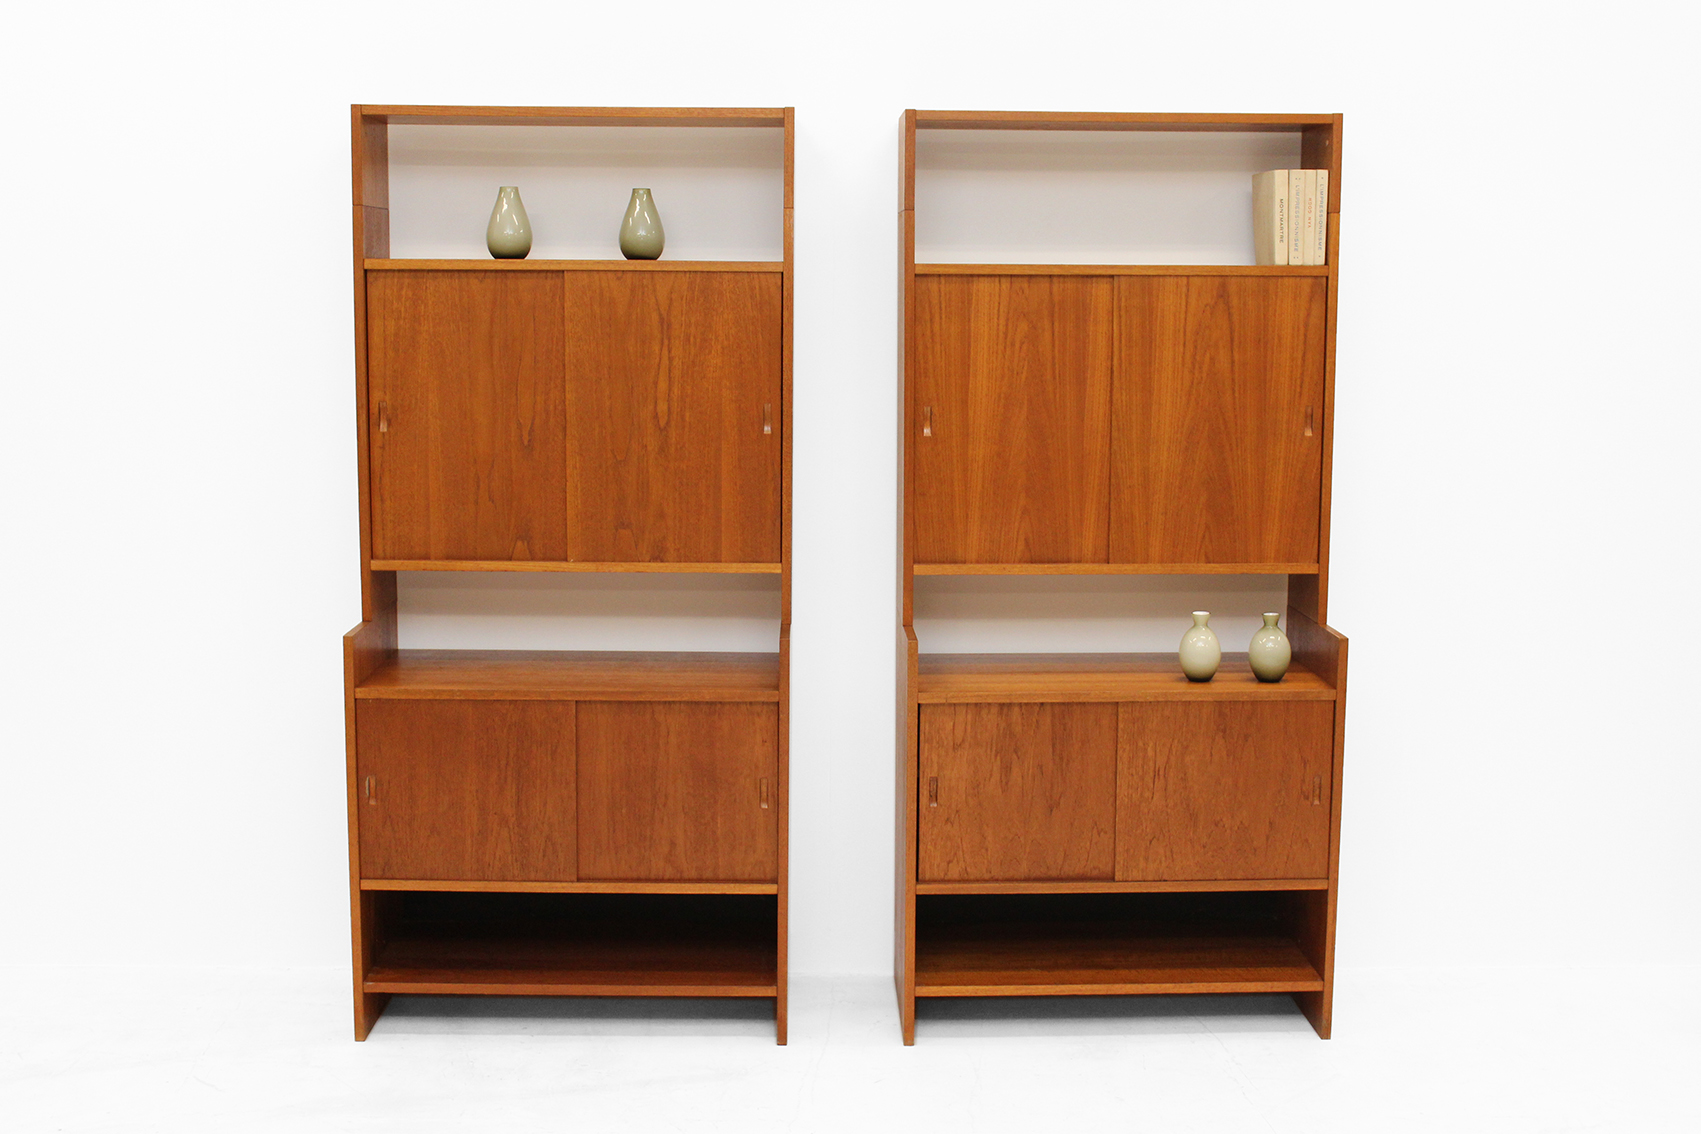 couple of office cabinets by Poul cadovius